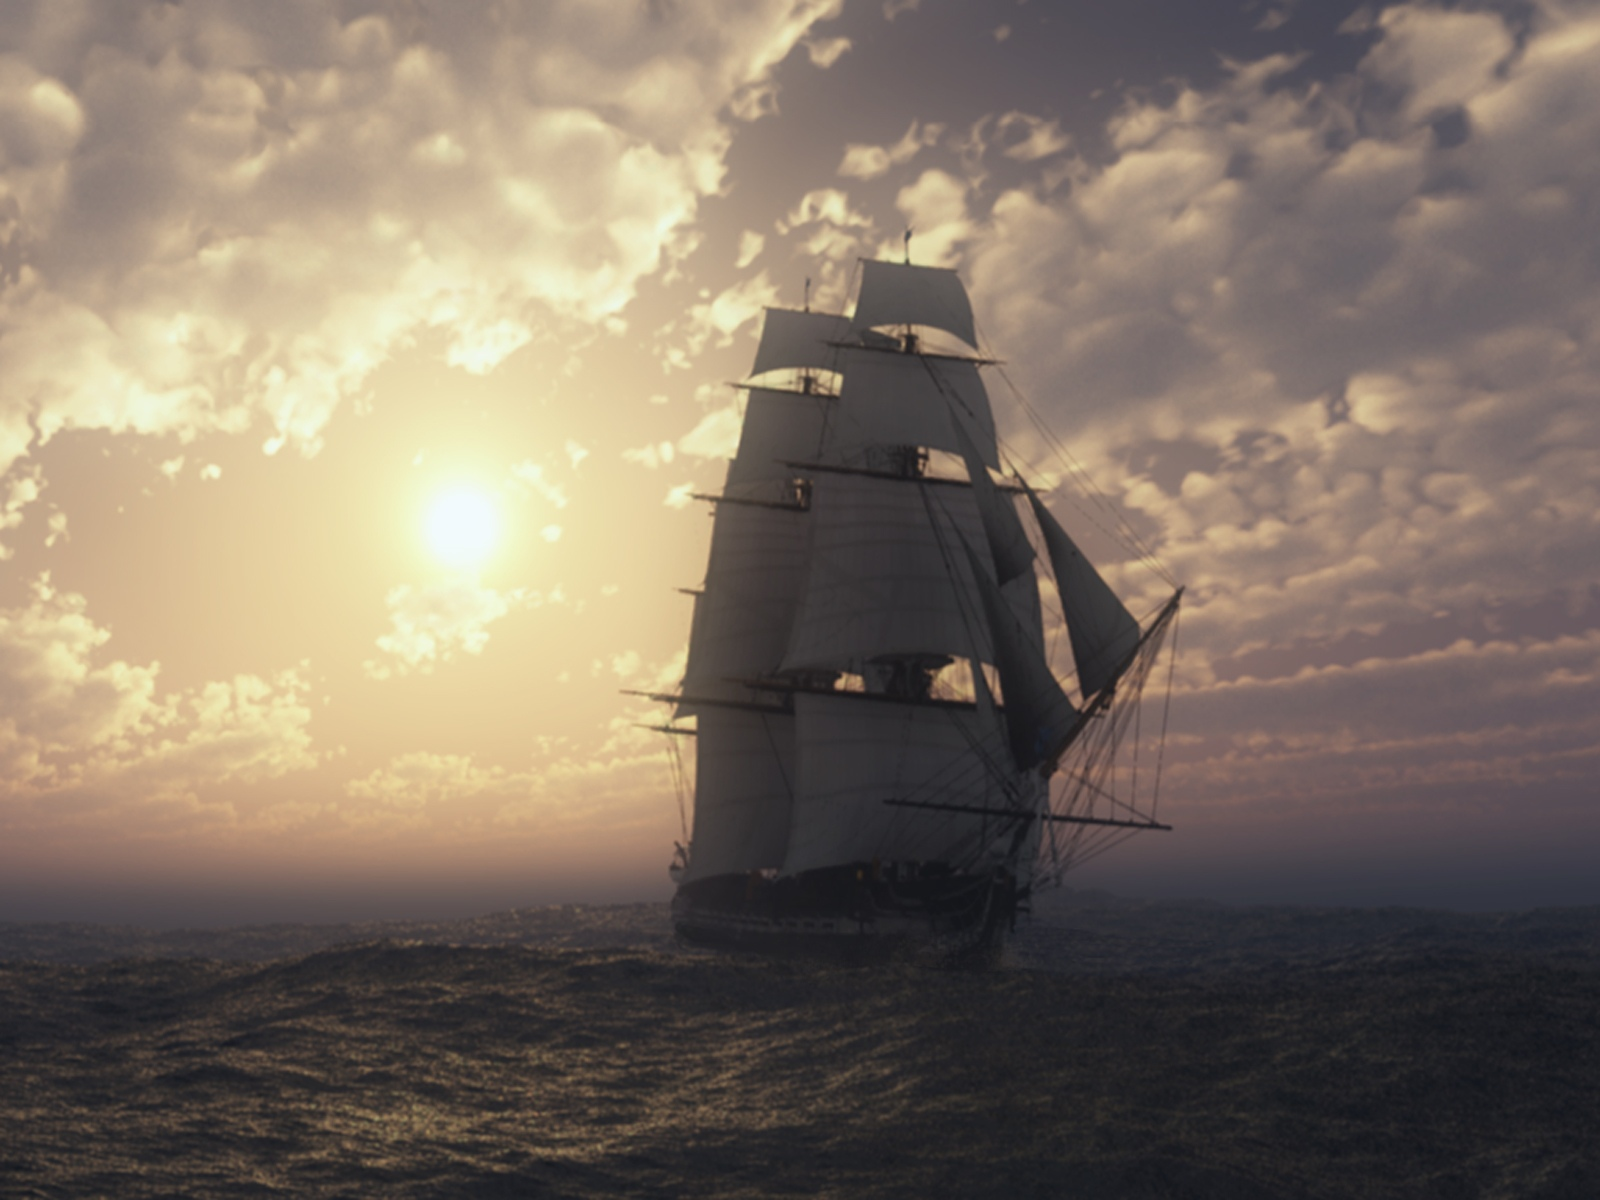 http://4.bp.blogspot.com/-OFaXMa82Lyw/UJWQyQk_zkI/AAAAAAAABEs/My_2wGBMSJ4/s1600/3D+Pirates+of+Caribbean+ships+wallpapers+(26).jpg